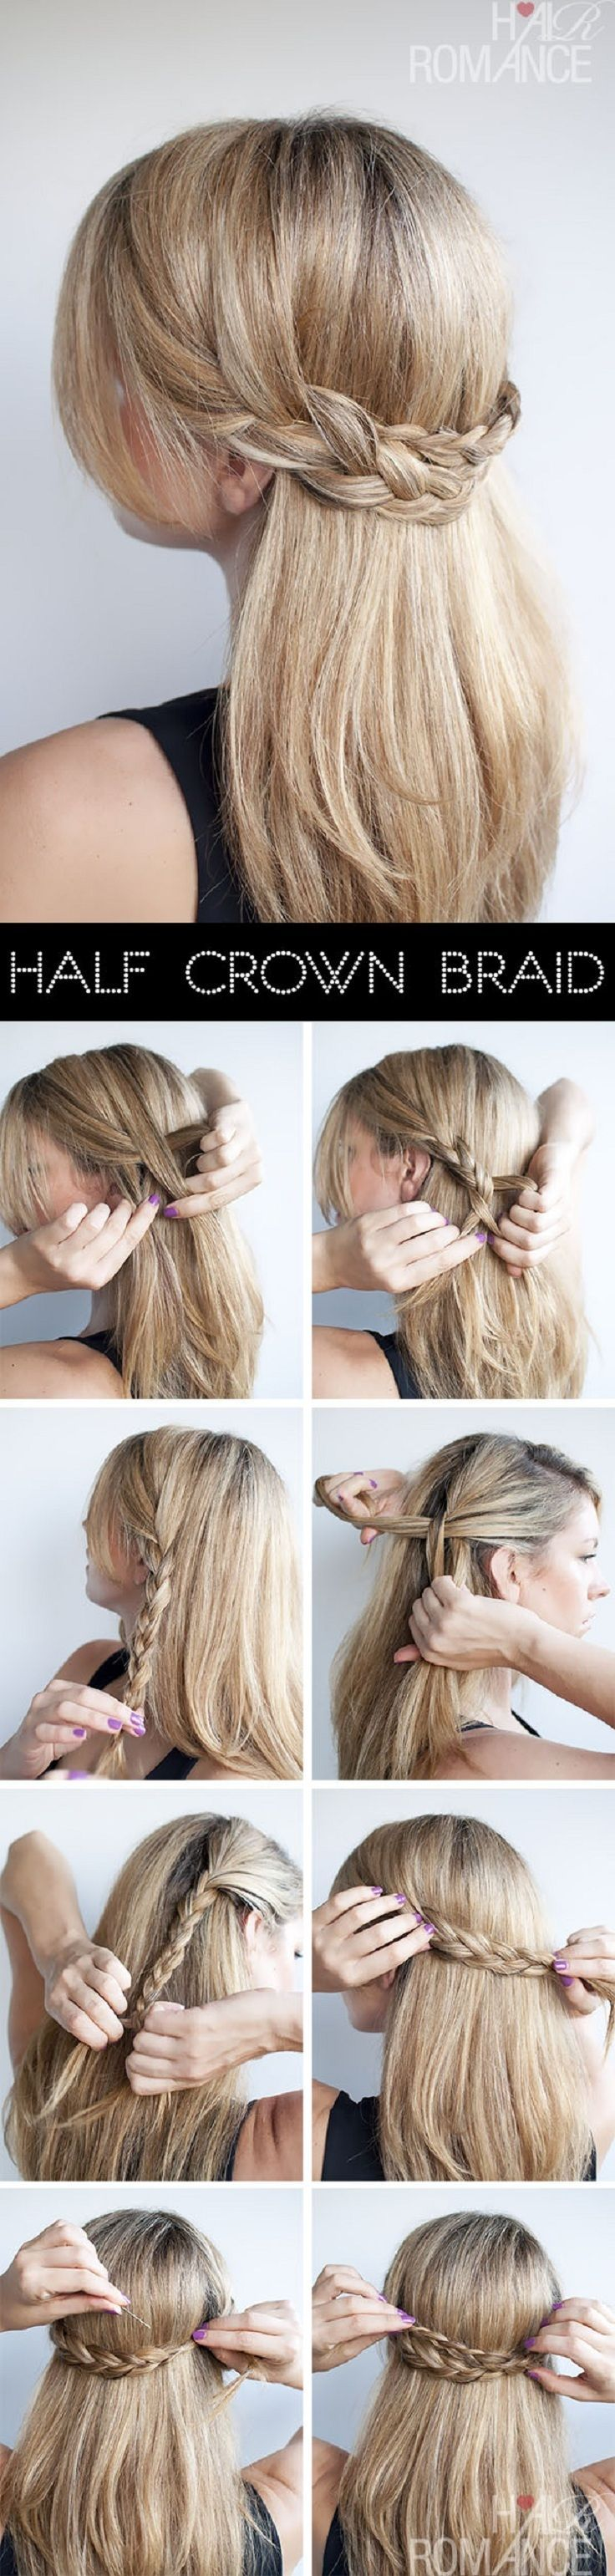 65 best Hairstyles images on Pinterest